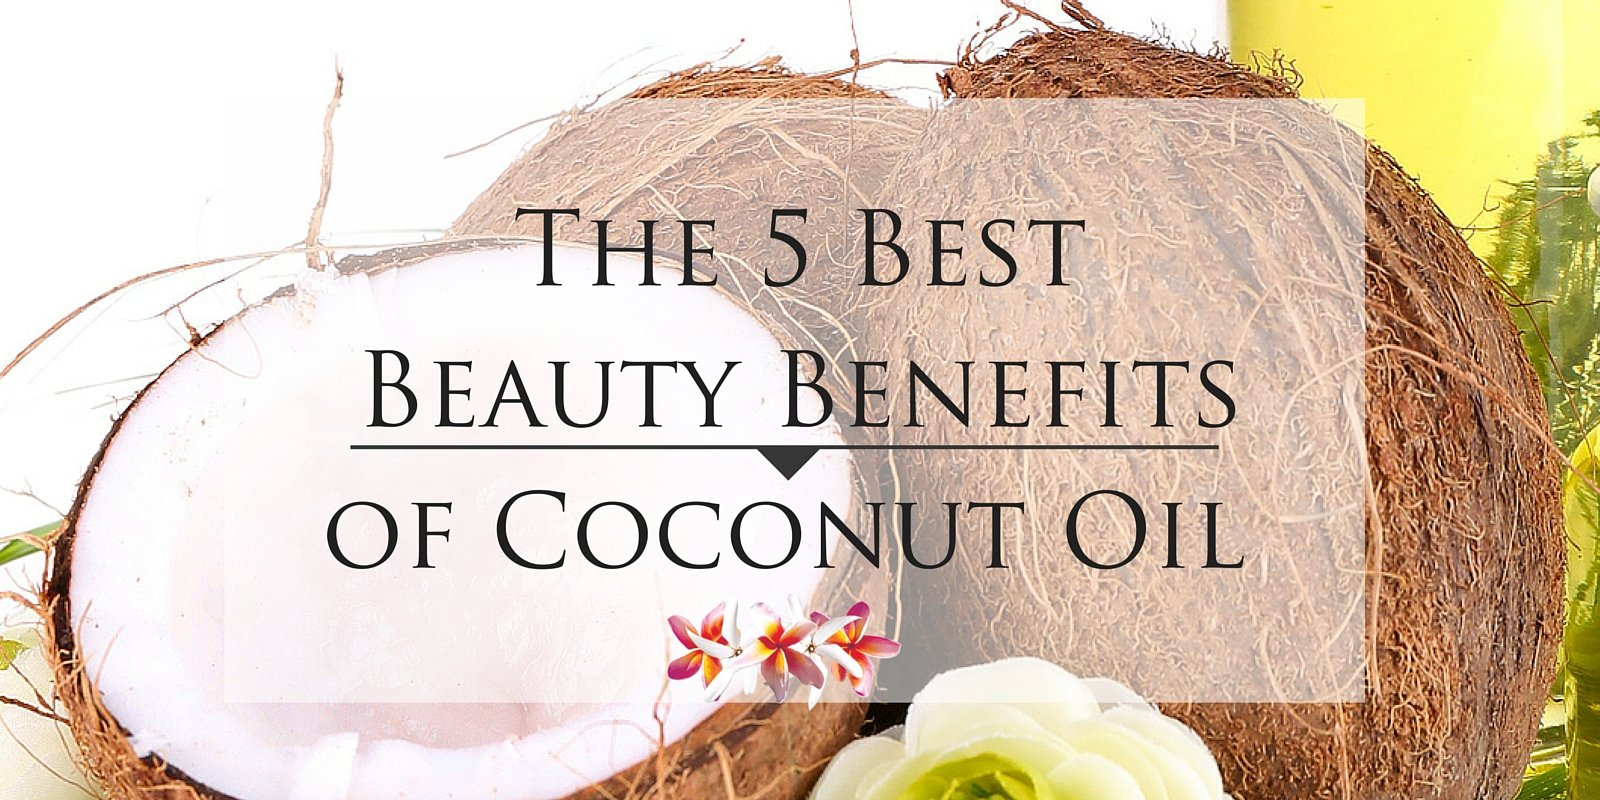 The 5 Best Beauty Benefits of Coconut Oil